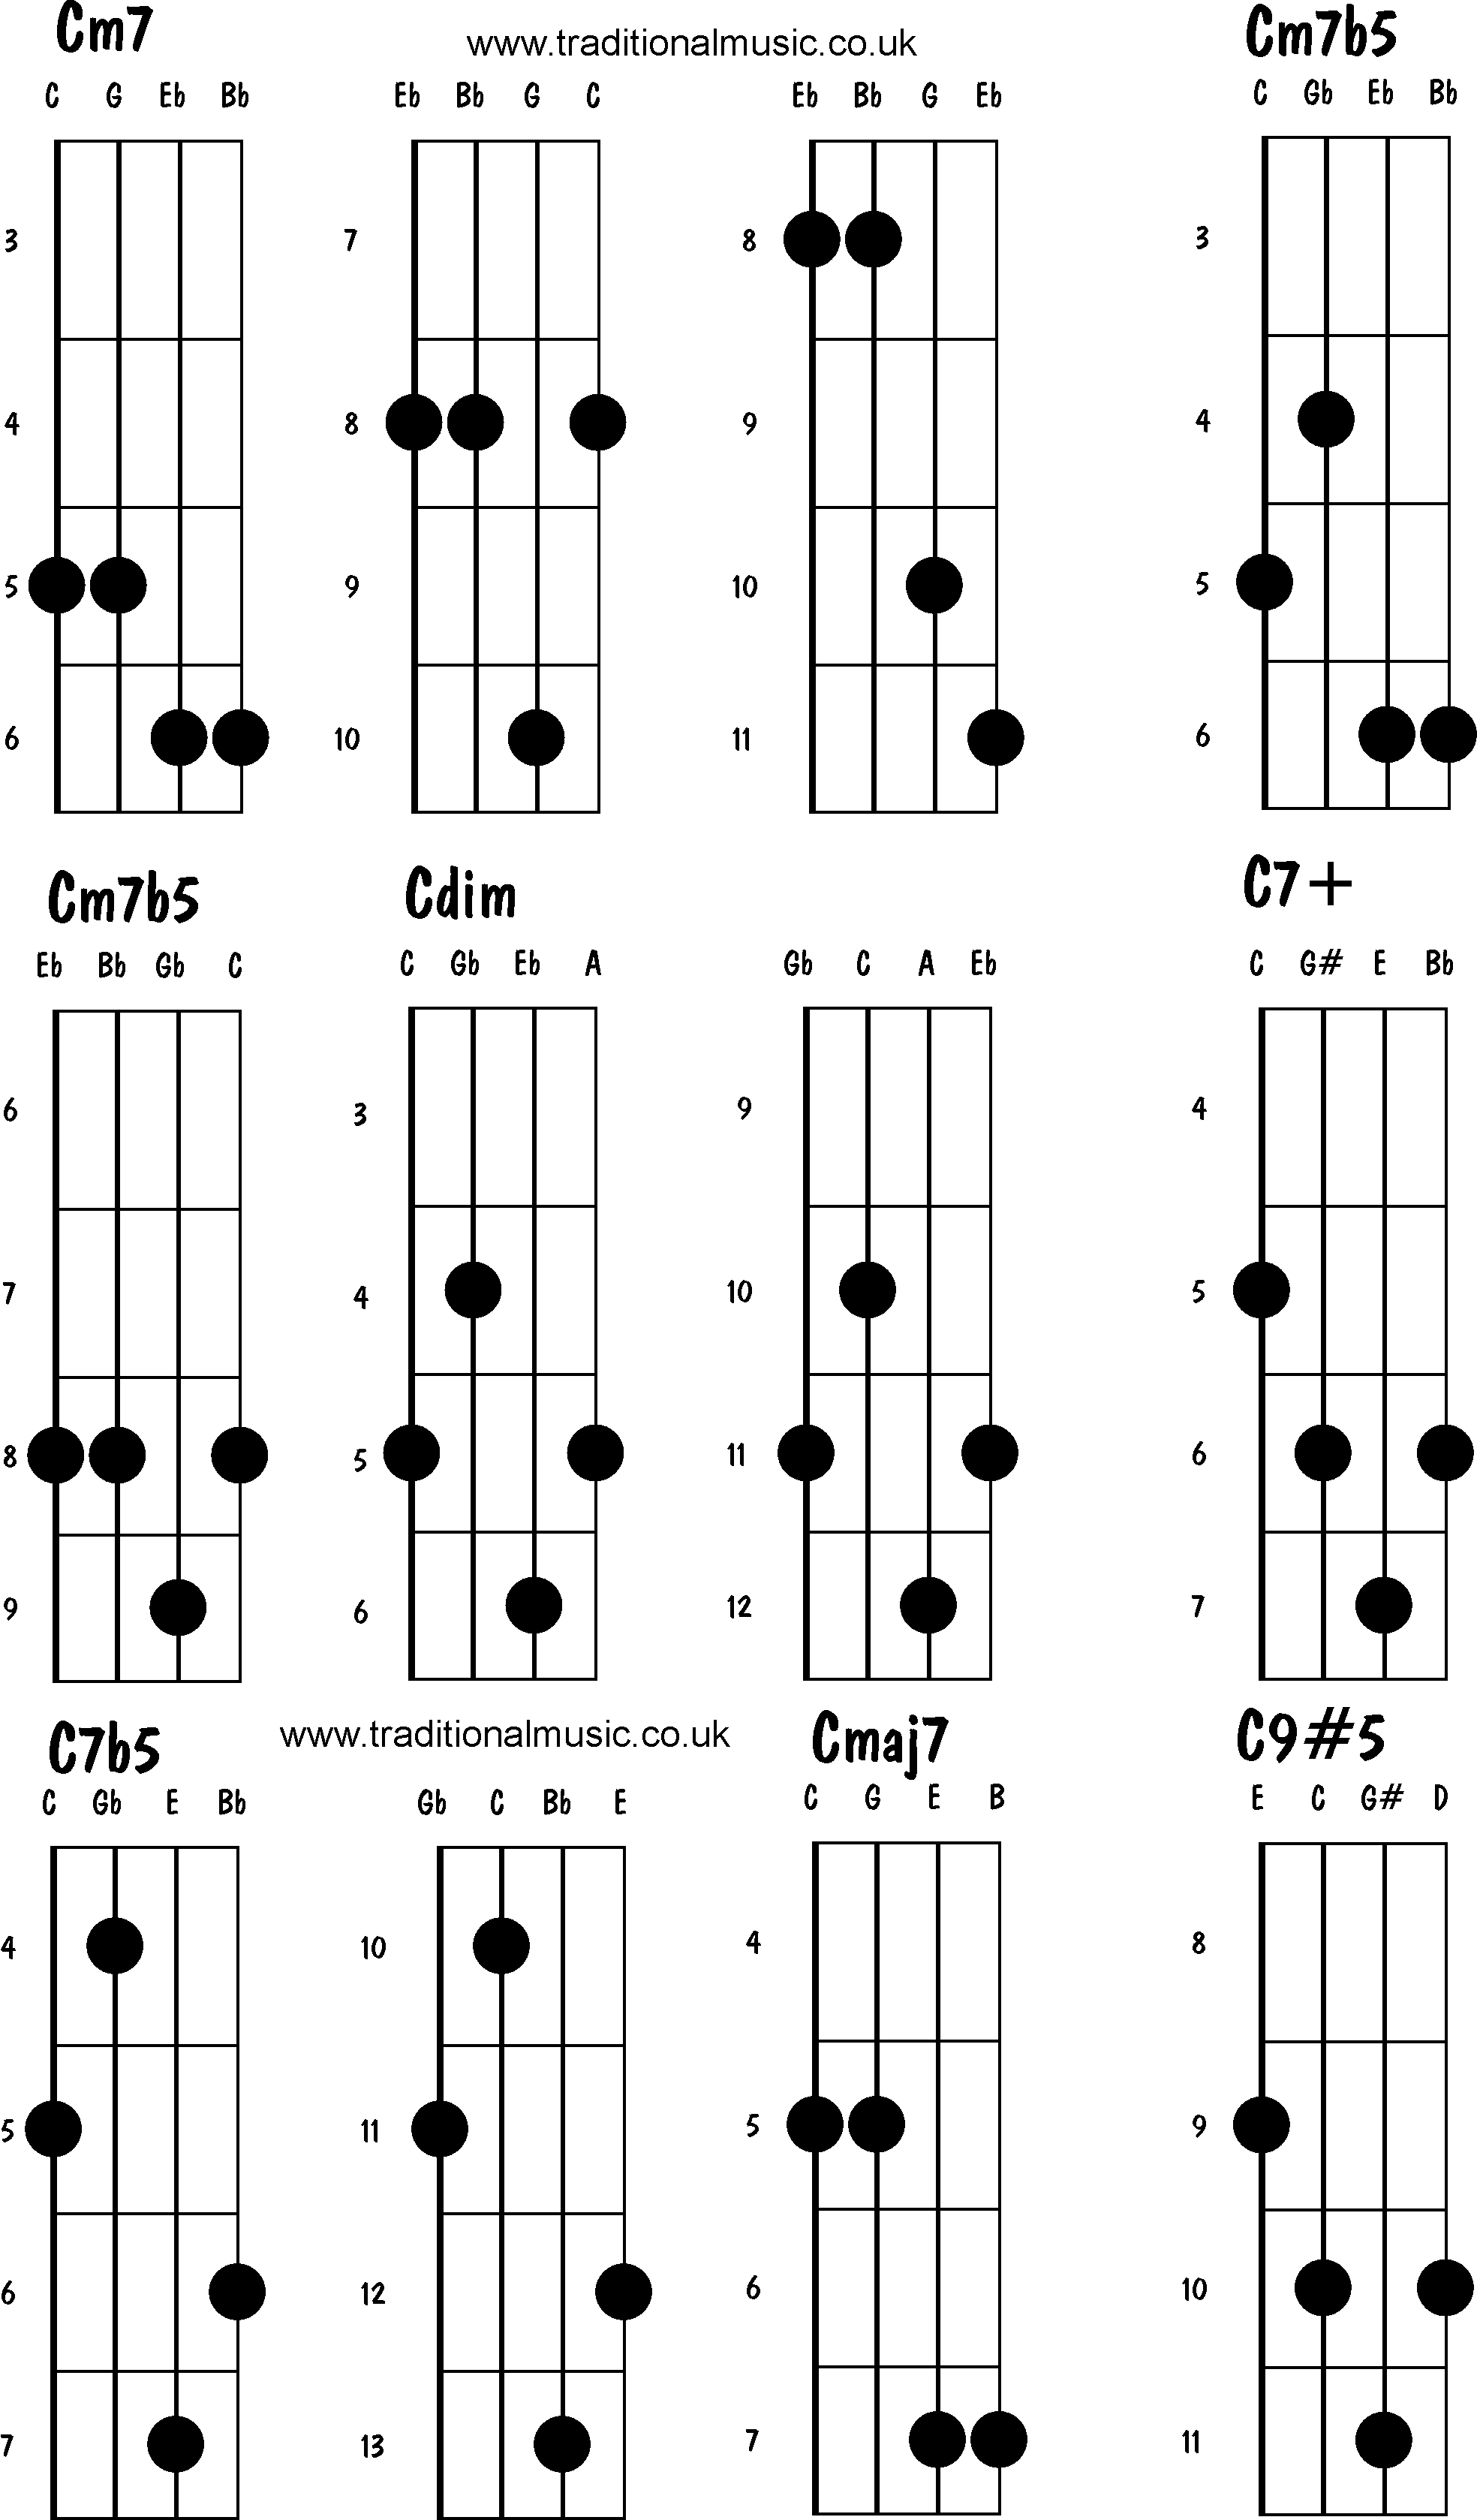 Mandolin chords advanced Cm7 Cm7b5 Cdim C7b5 Cmaj7 C95 – Mandolin Chord Chart